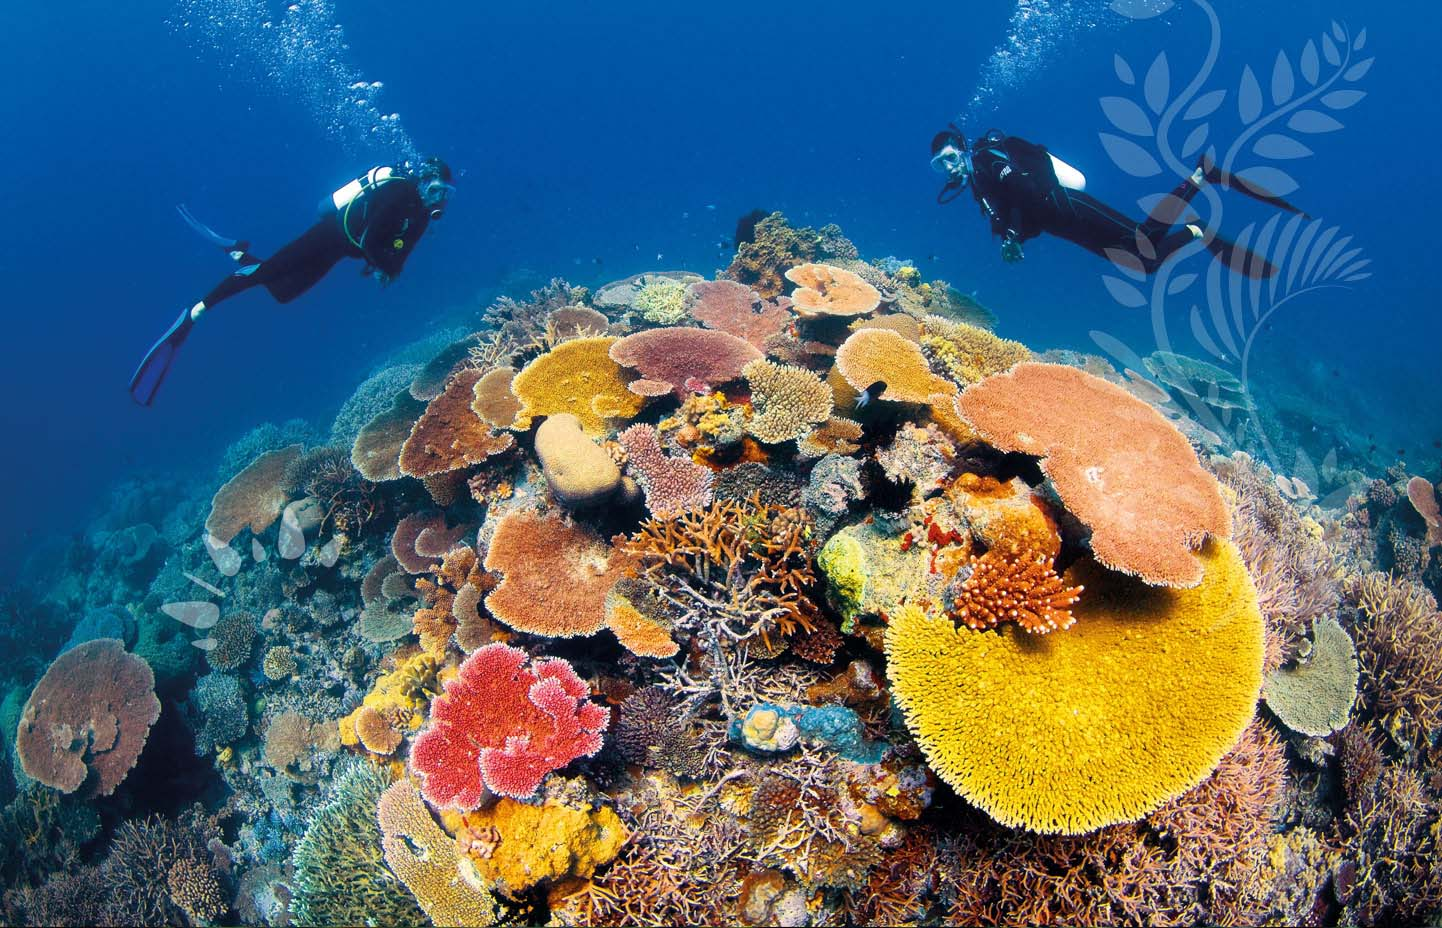 http://www.prasannaholidays.com/wp-content/uploads/2014/05/diving_experience-cairns_great_barrier_reef.jpg